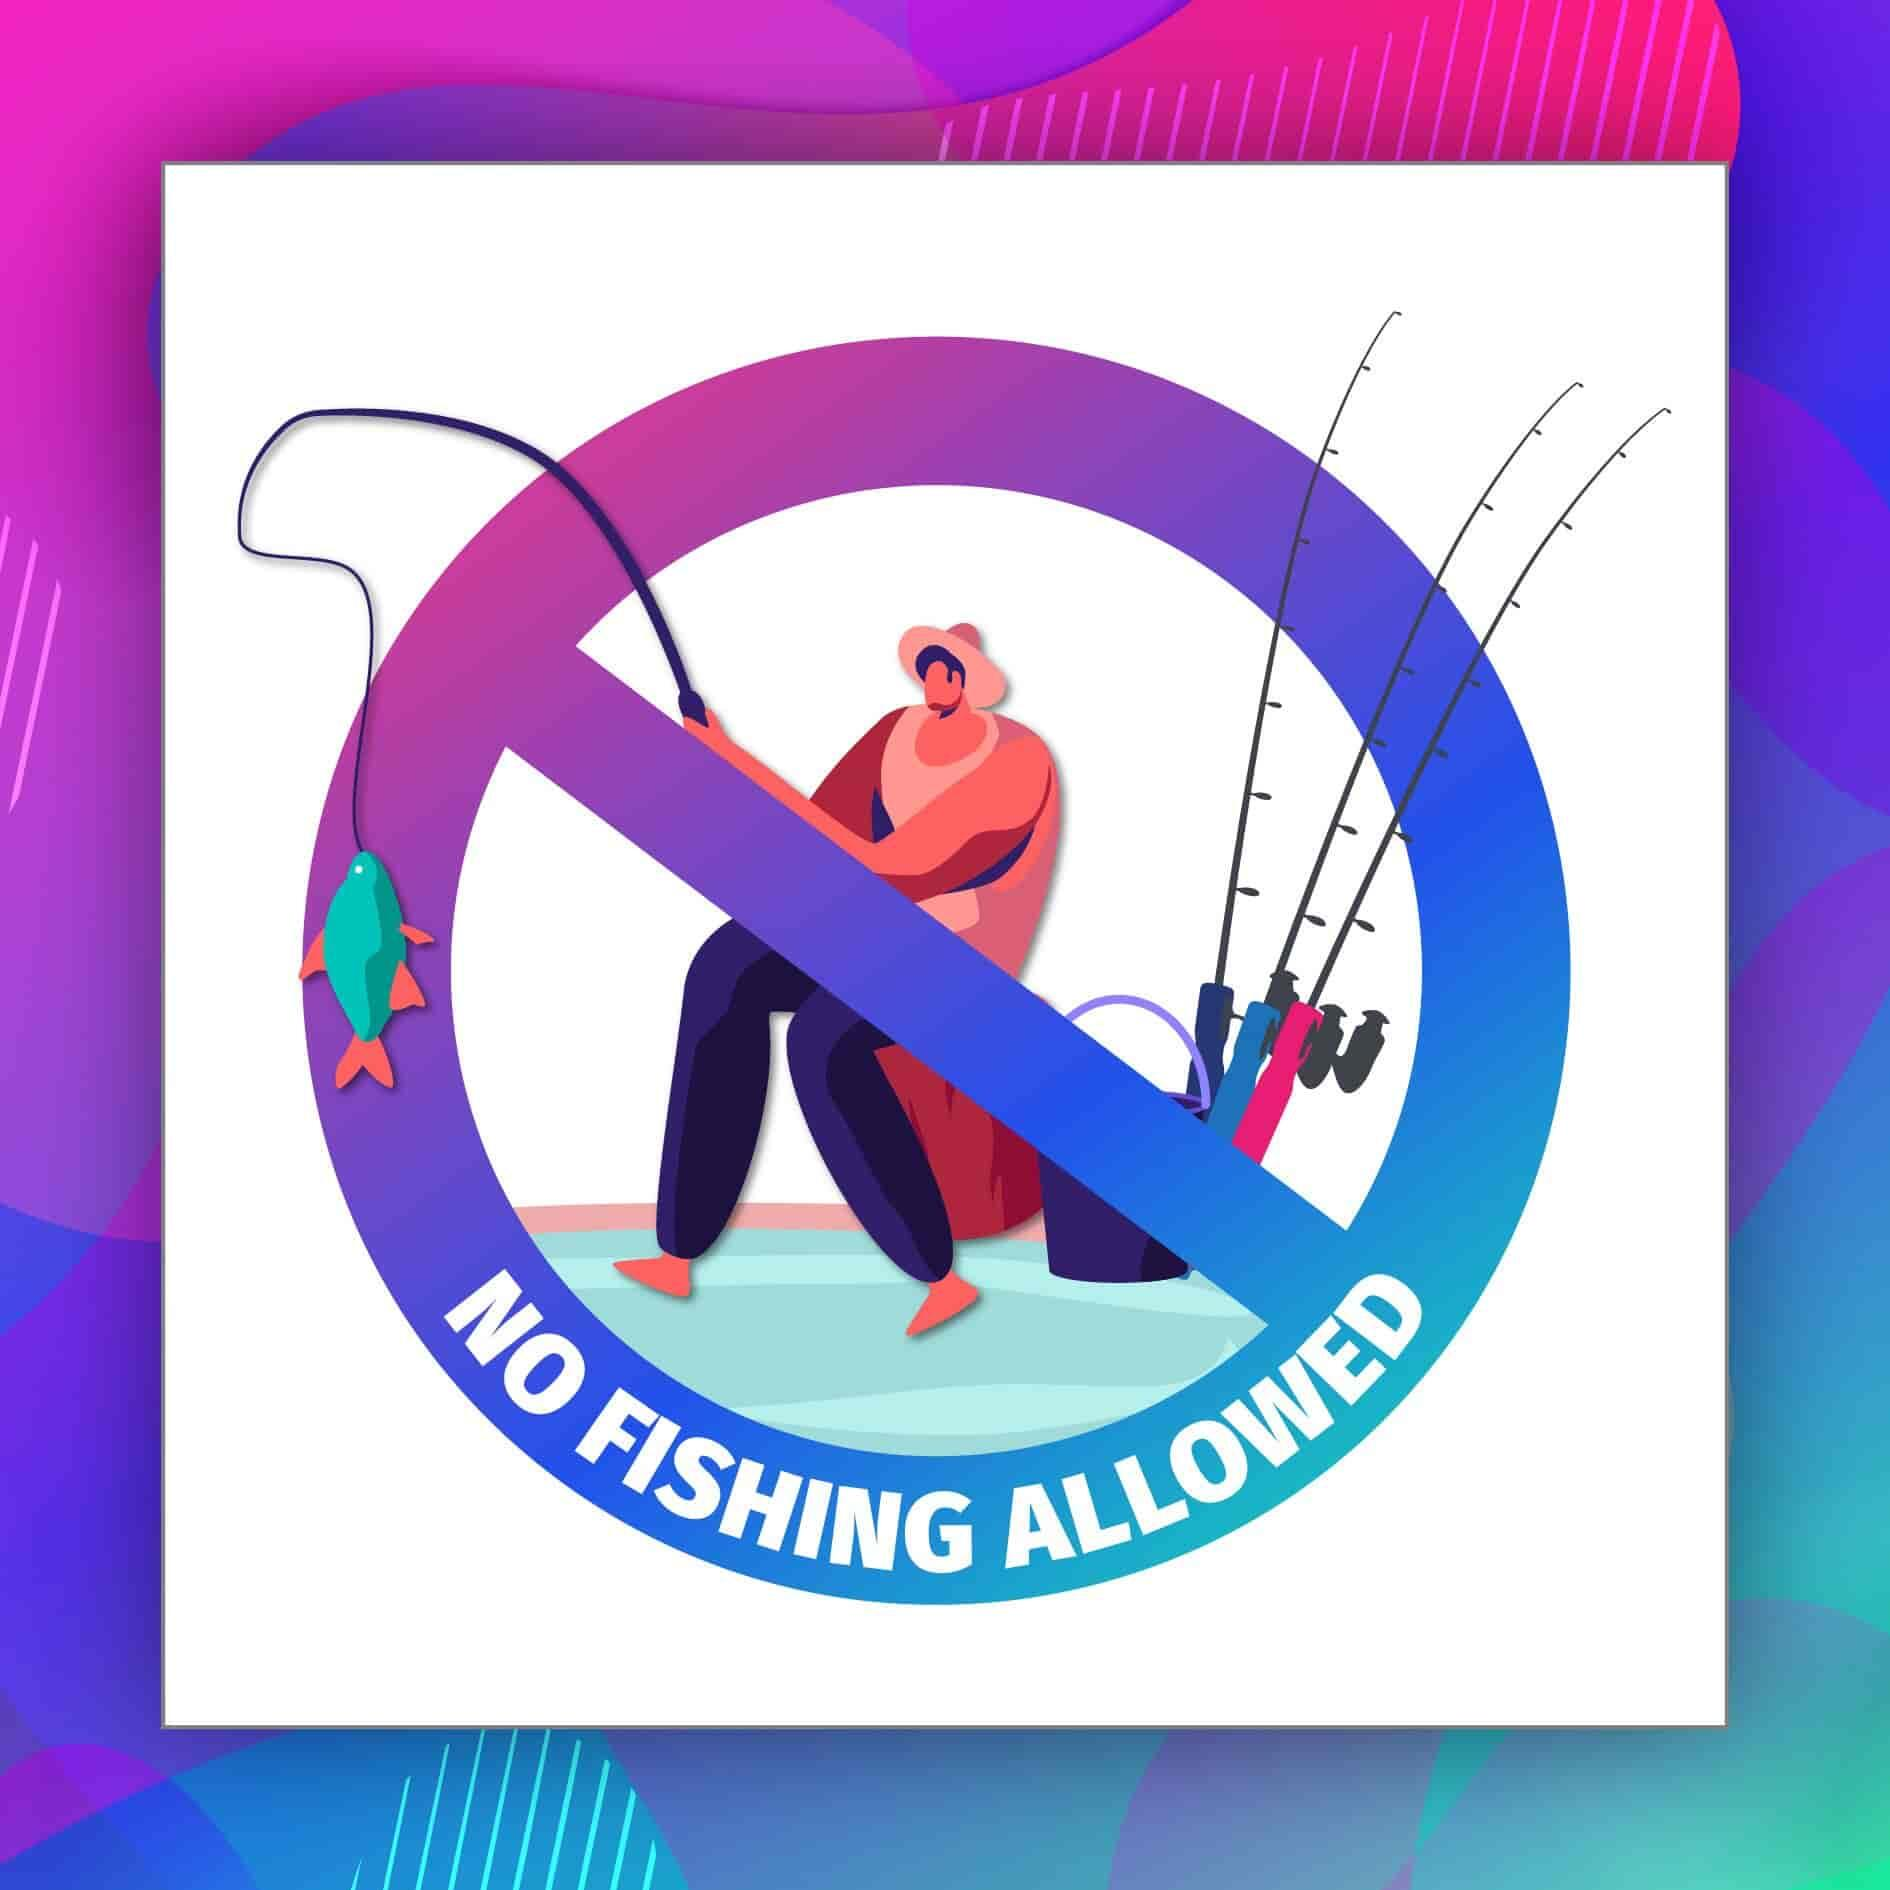 News 2020 - No Fishing Allowed Sign | Lexis Hibiscus® Port Dickson